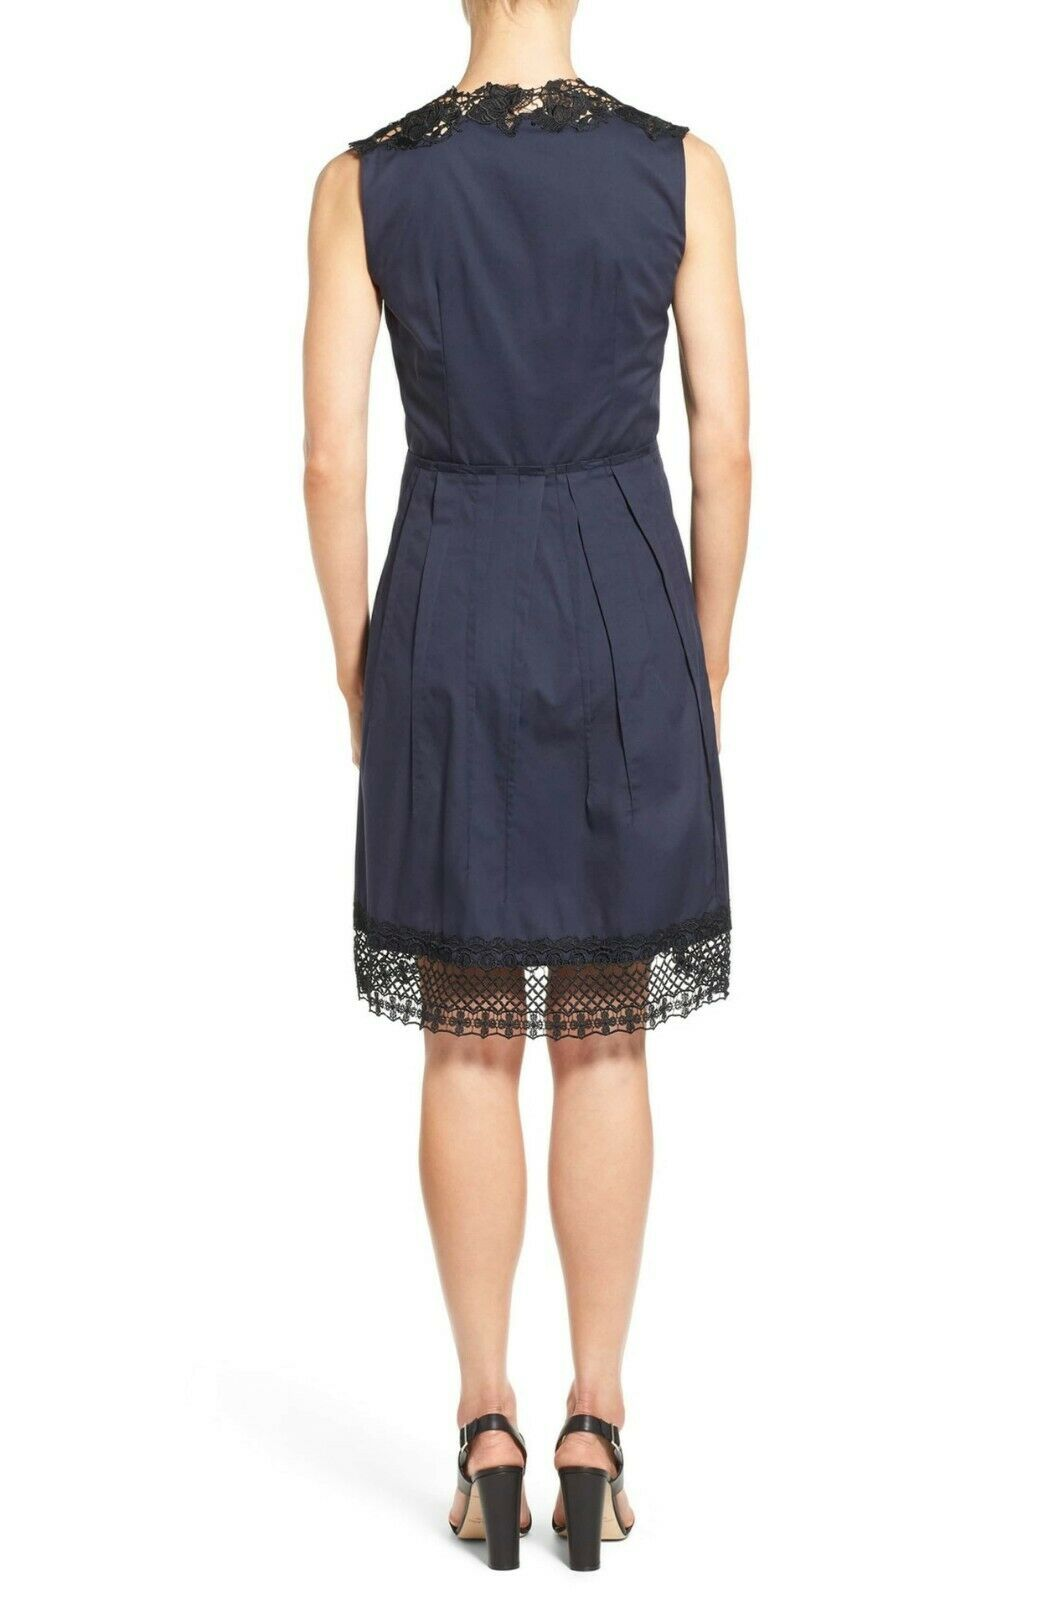 NWT Elie Tahari Cady Cady Cady in Navy bluee Poplin Cotton Lace Trim A-Line Dress 8  348 cdc929